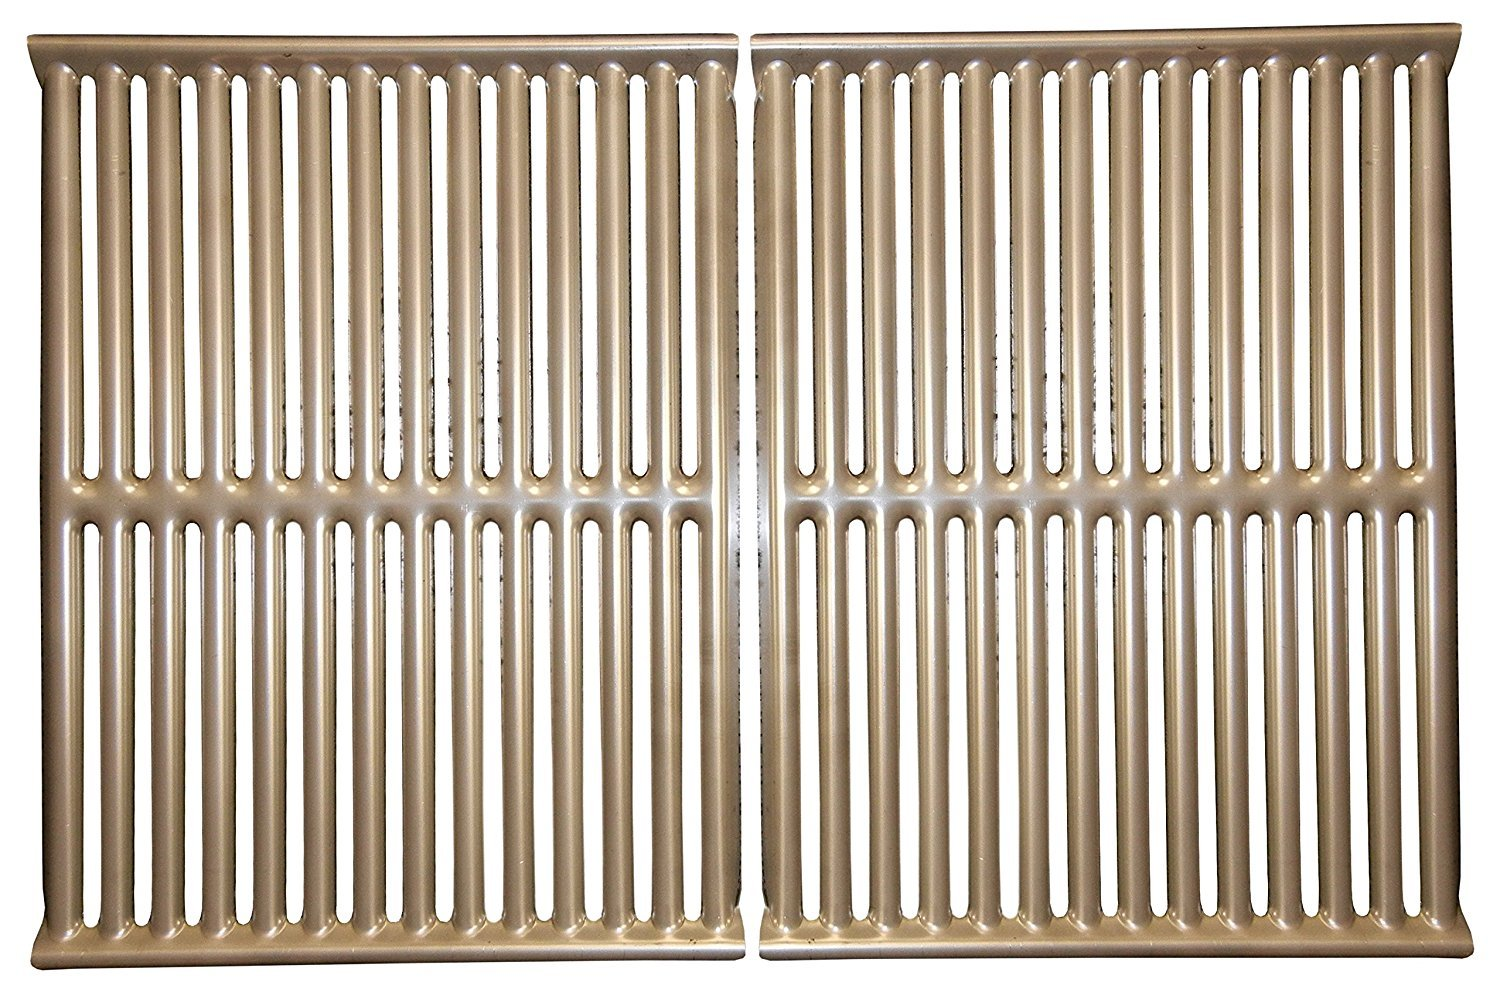 Stamped stainless steel cooking grid [並行輸入品]   B01MZB56DN